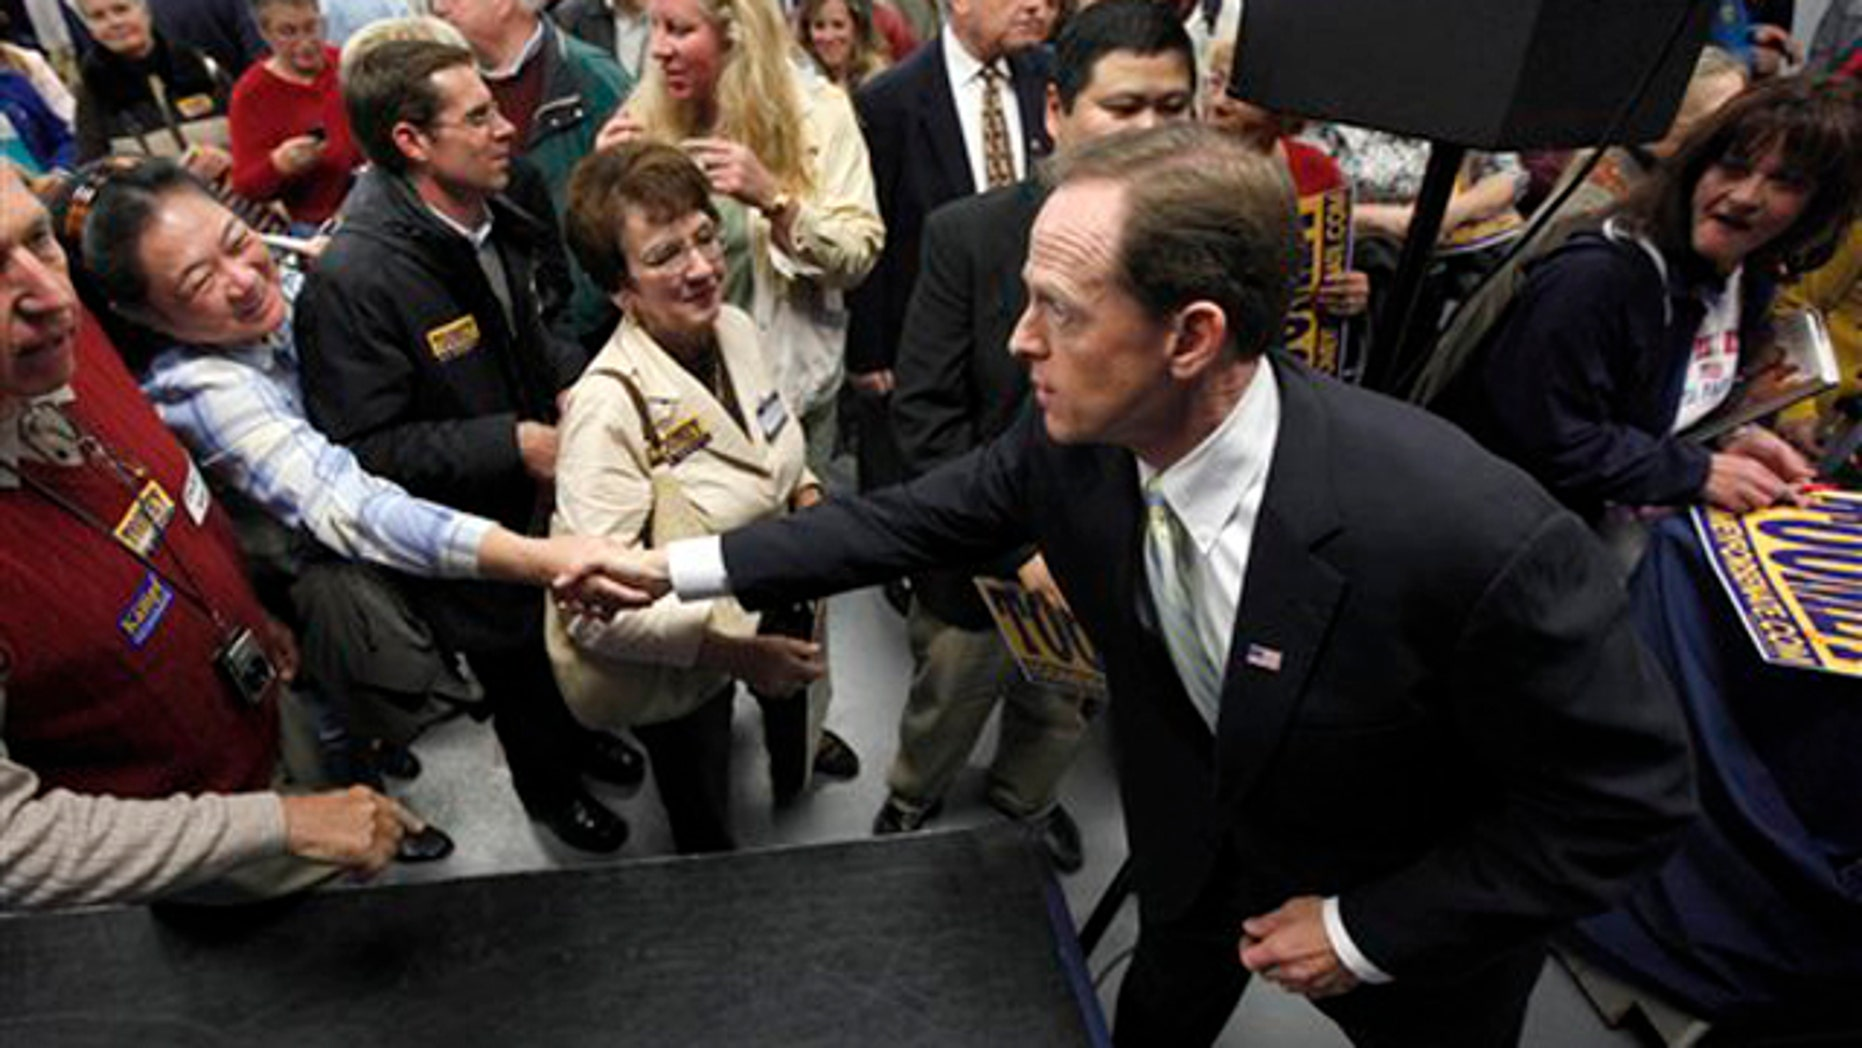 In this Oct. 22 photo, Pennsylvania Republican Senate candidate Pat Toomey meets with supporters at a rally in Blue Bell, Pa. (AP Photo)